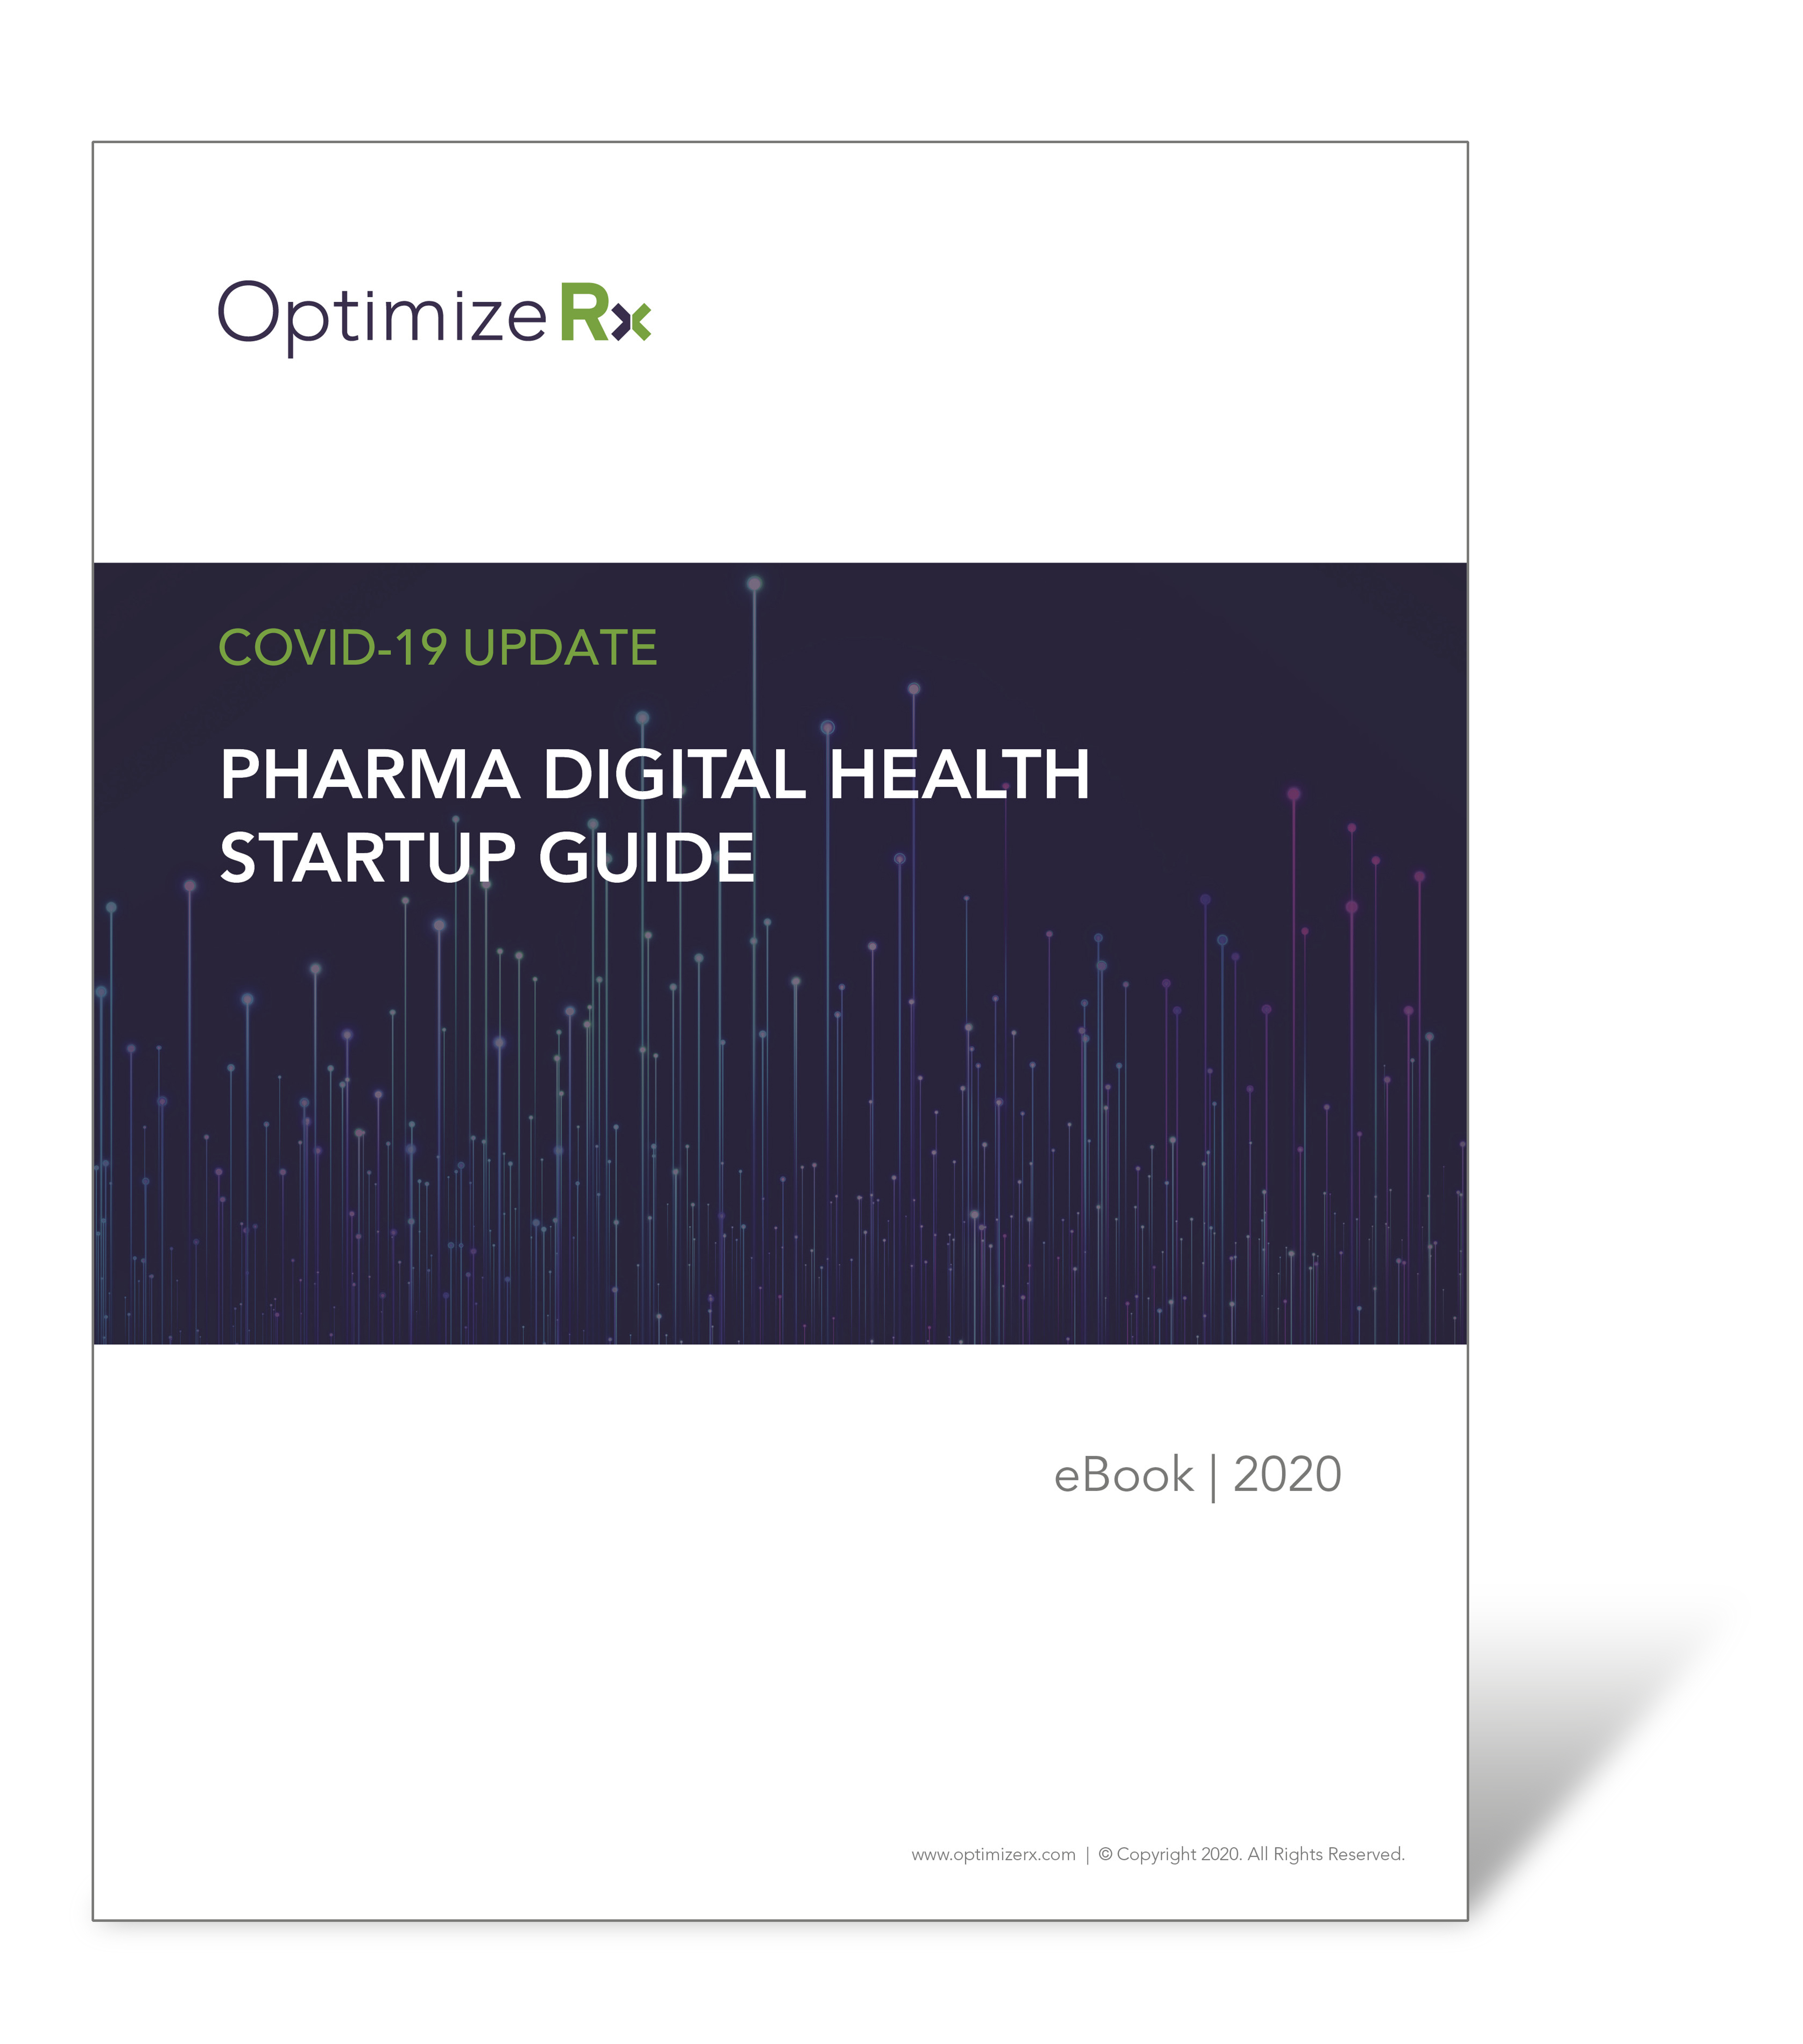 OPRX_Digital_Health_Start_Up_Guide_Landing_Page_Cover_COVID_Update_082820